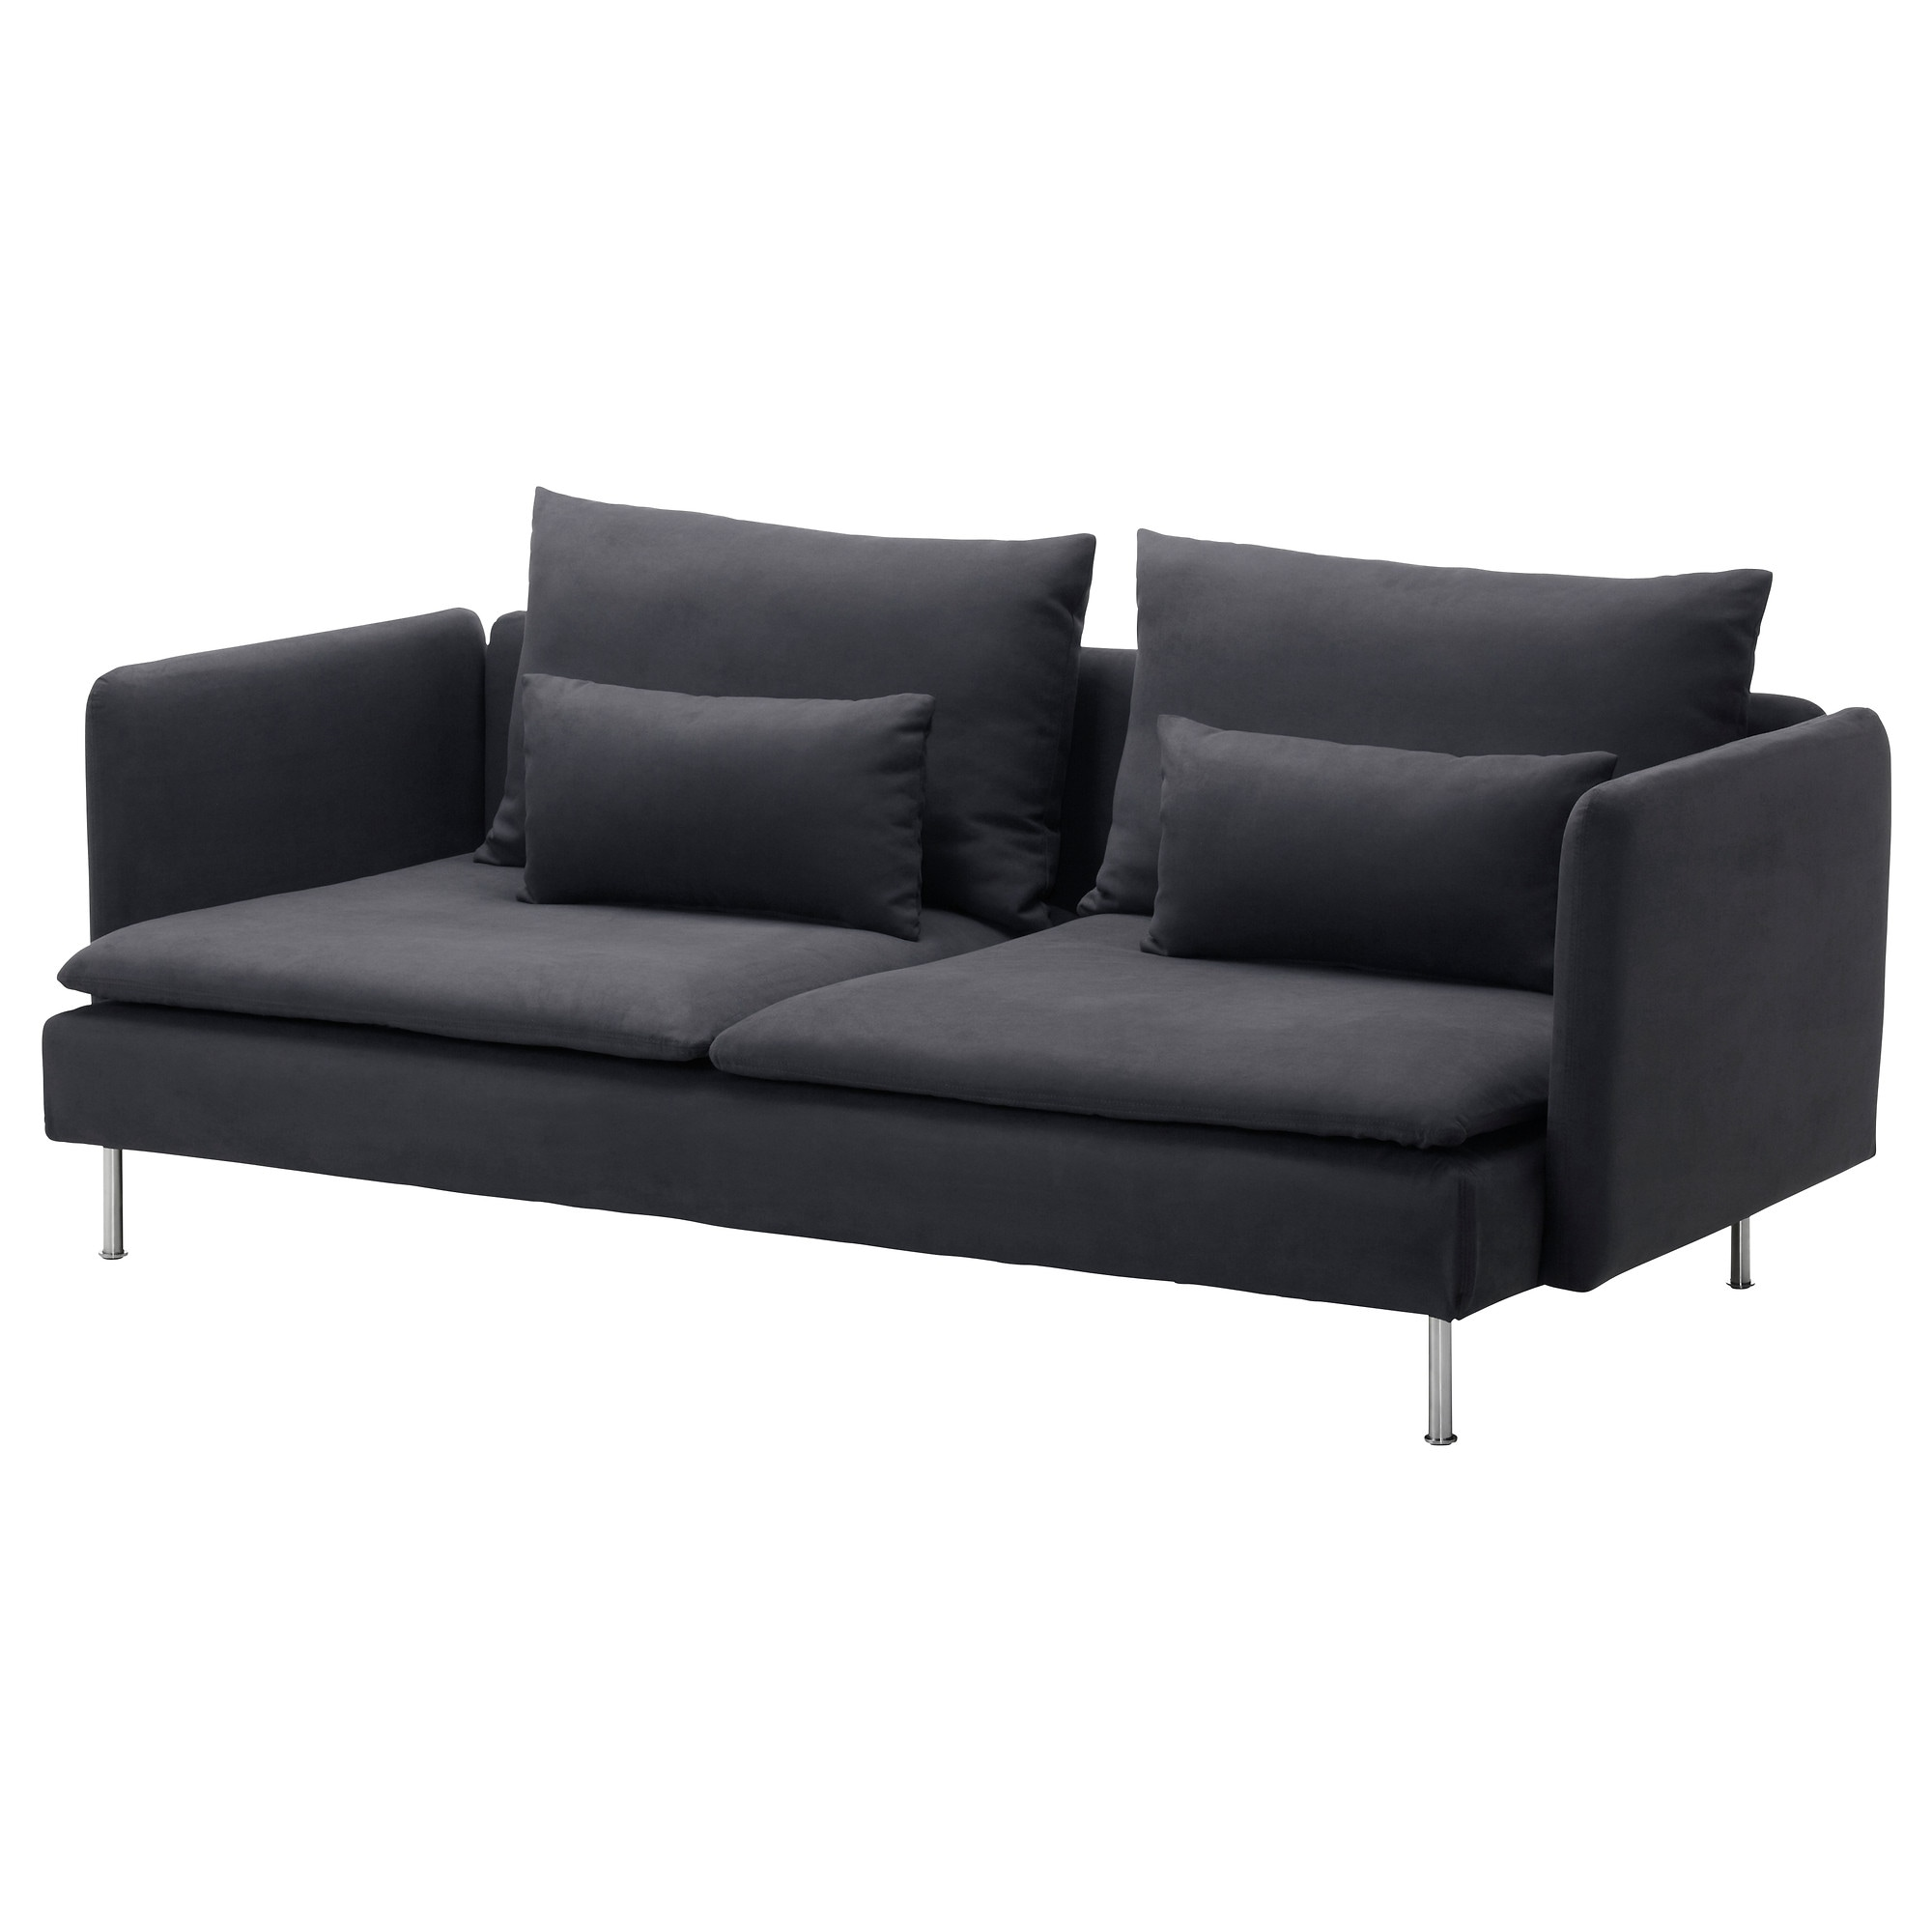 Modular Sofas & Sectionals - Ikea Couch L Form